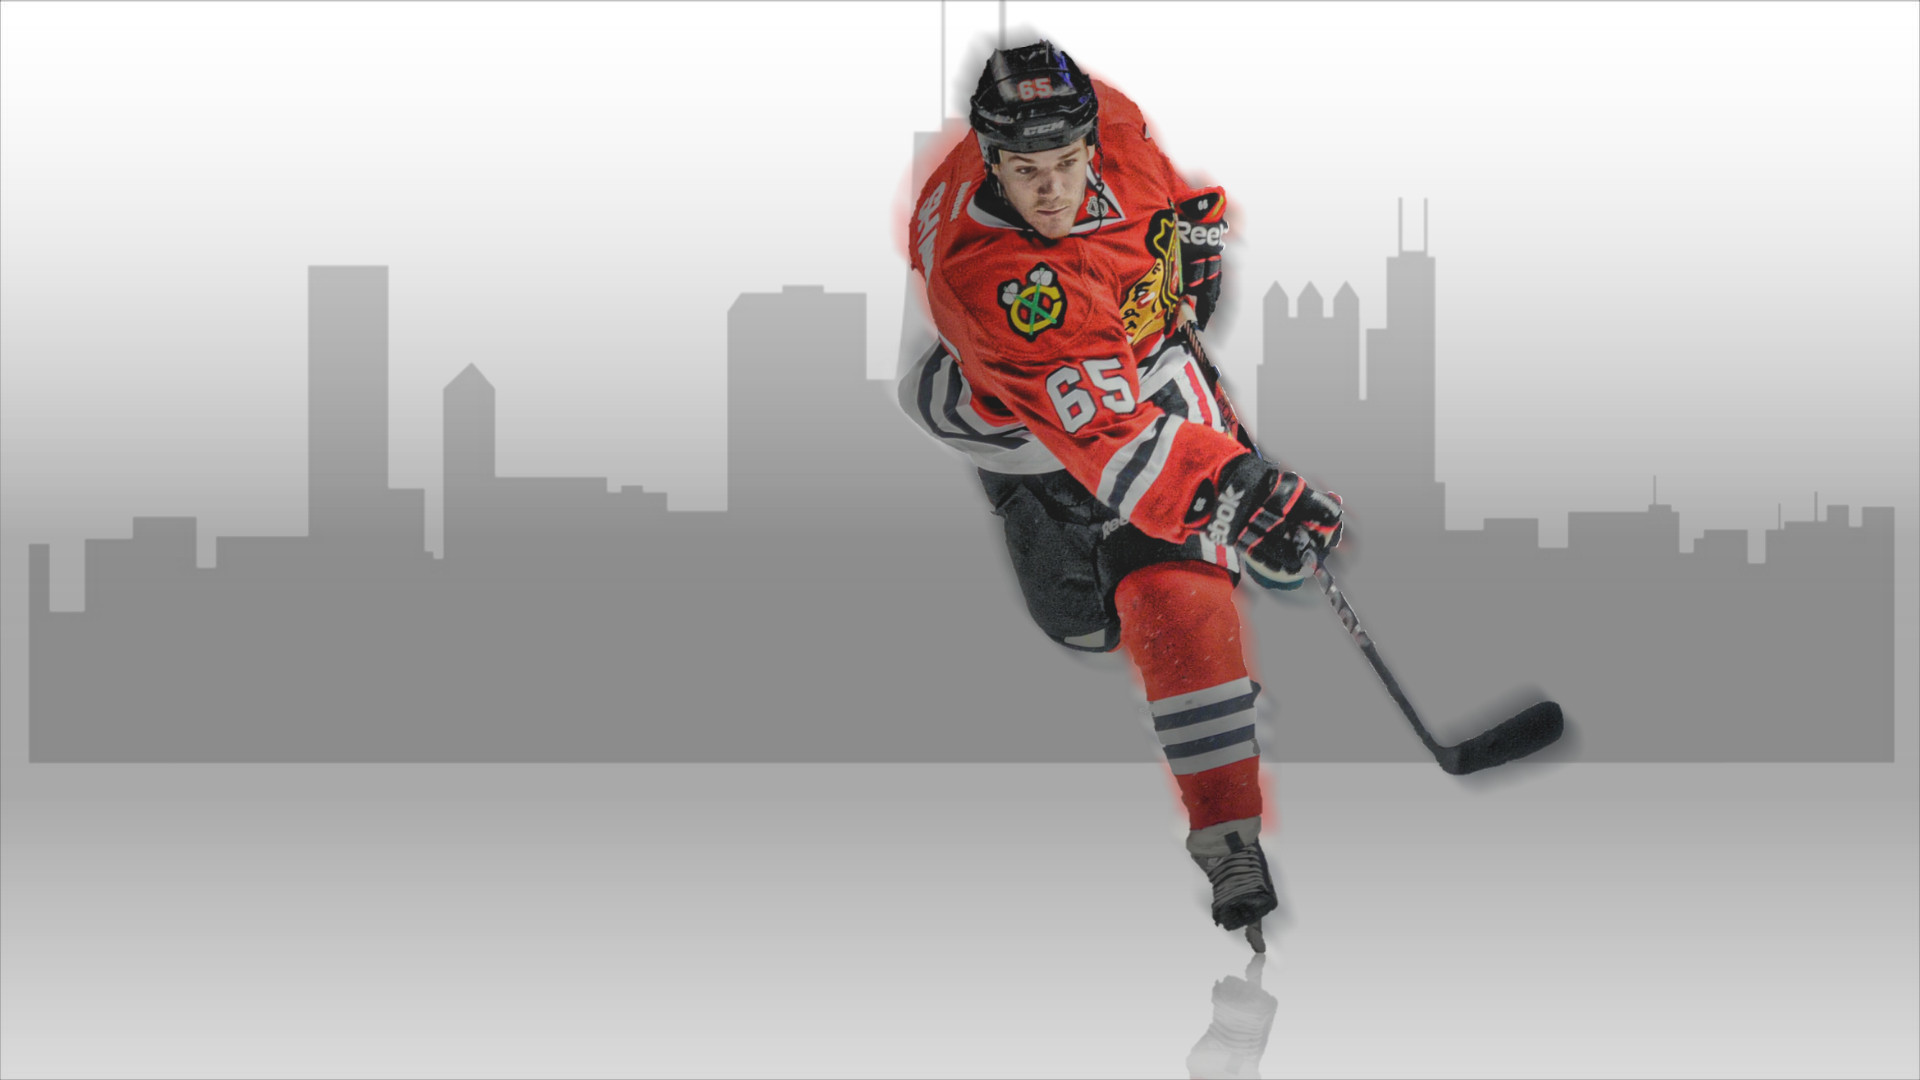 1920x1080 I made an official looking Andrew Shaw wallpaper. Thoughts?